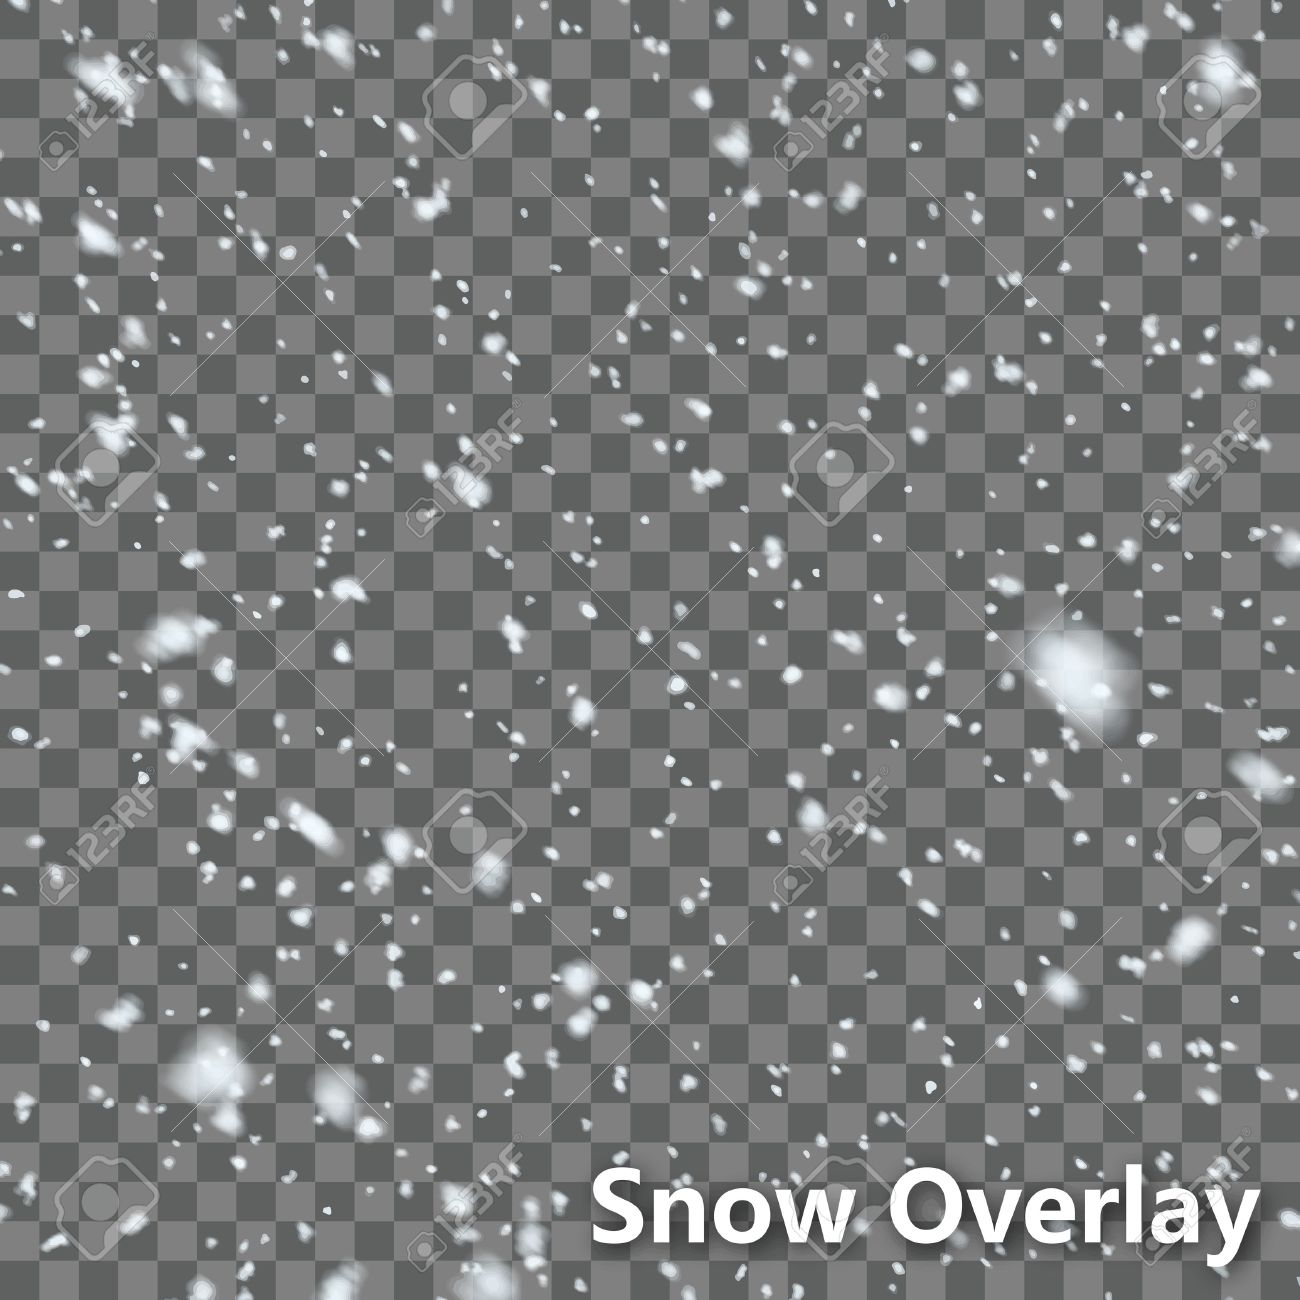 Isolated Falling Snow Overlay EPS10 Vector - 51756182